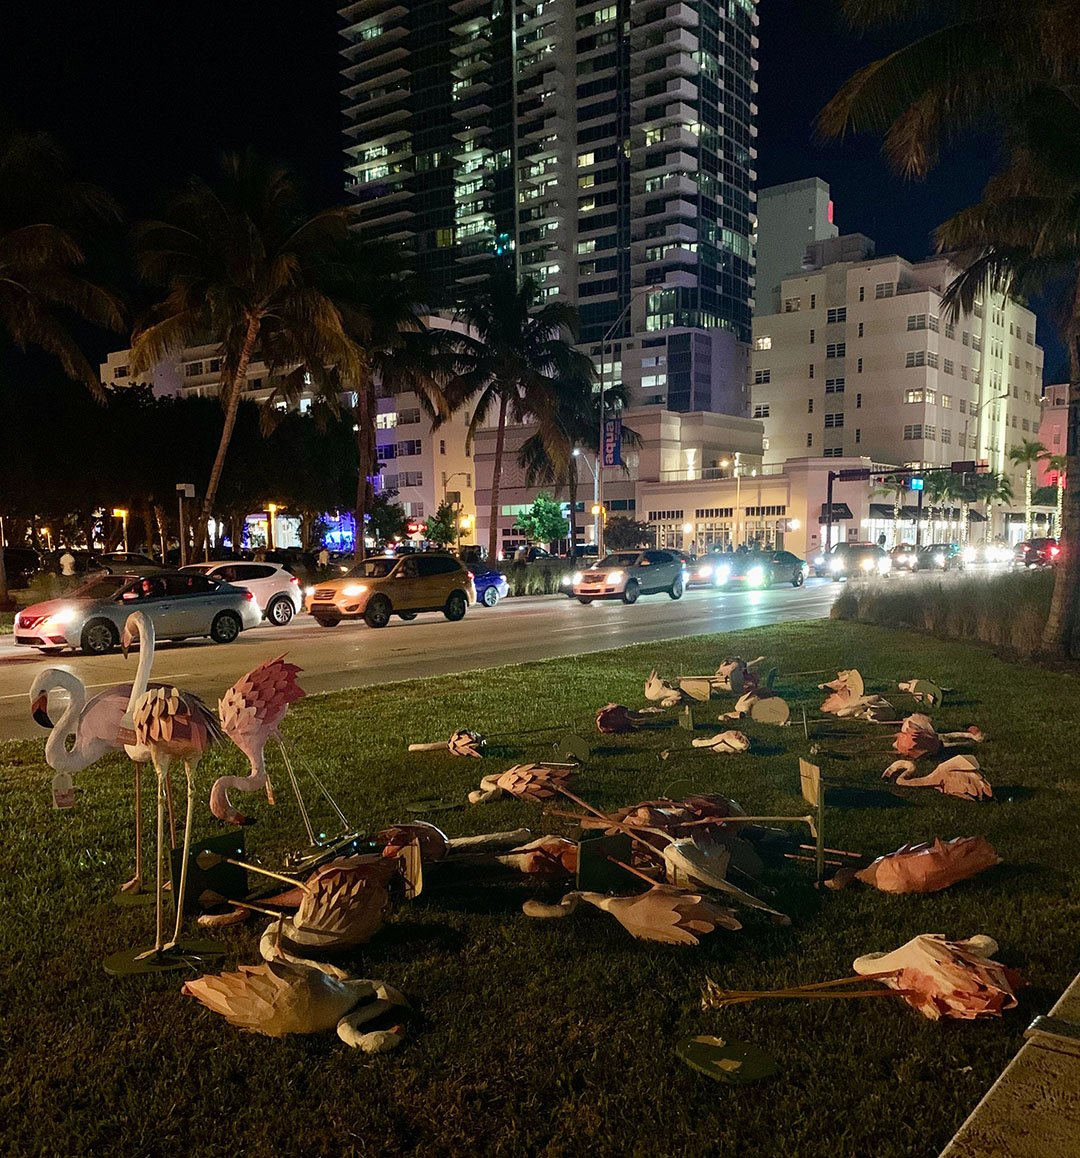 Miami street at night with Flamingo sculpture art on lawn